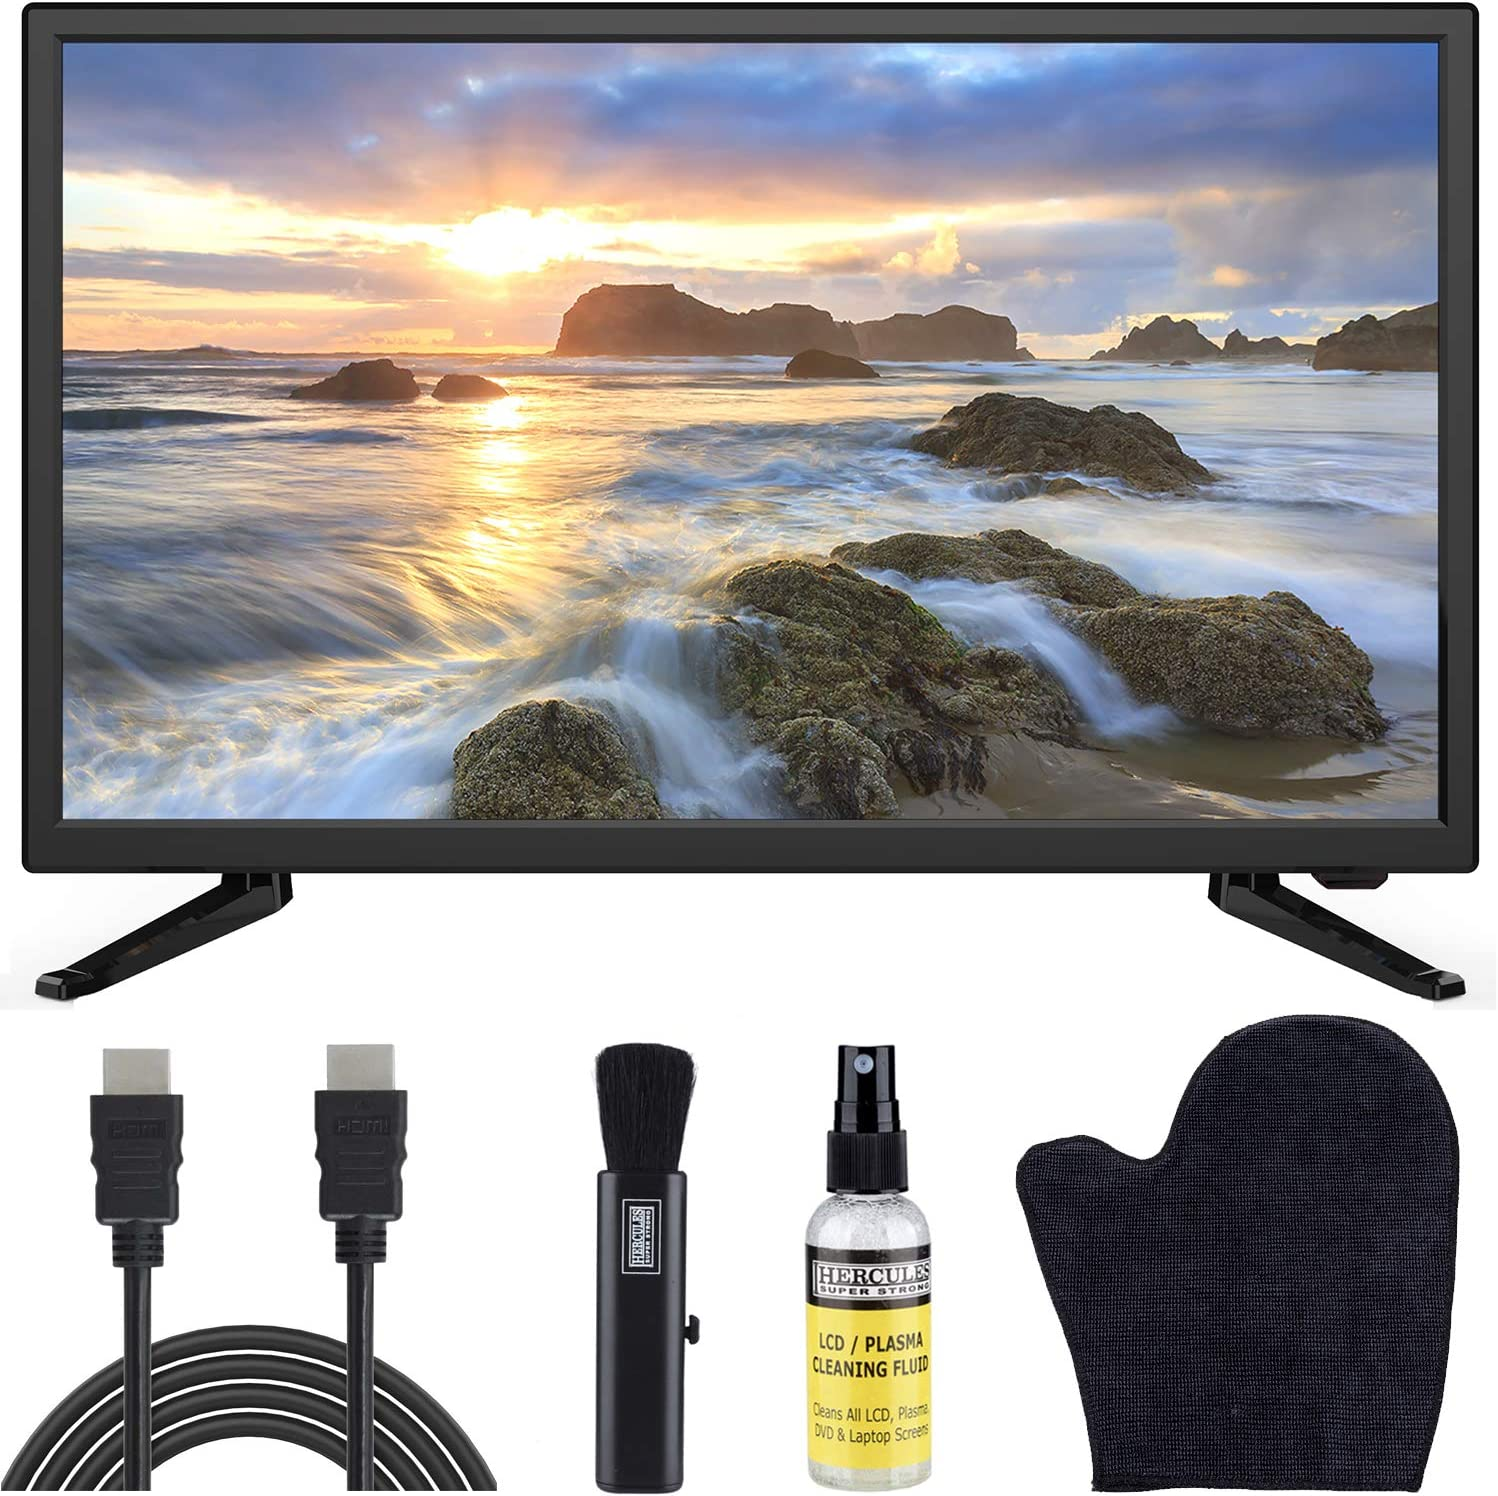 Sansui 24-Inch 720p HD LED Smart TV (S24P28DN) with Built-in HDMI, USB, High Resolution, Digital Noise Reduction, Dolby Audio Bundle with 6.5 ft HDMI Cable and LCD Screen Cleaning Kit